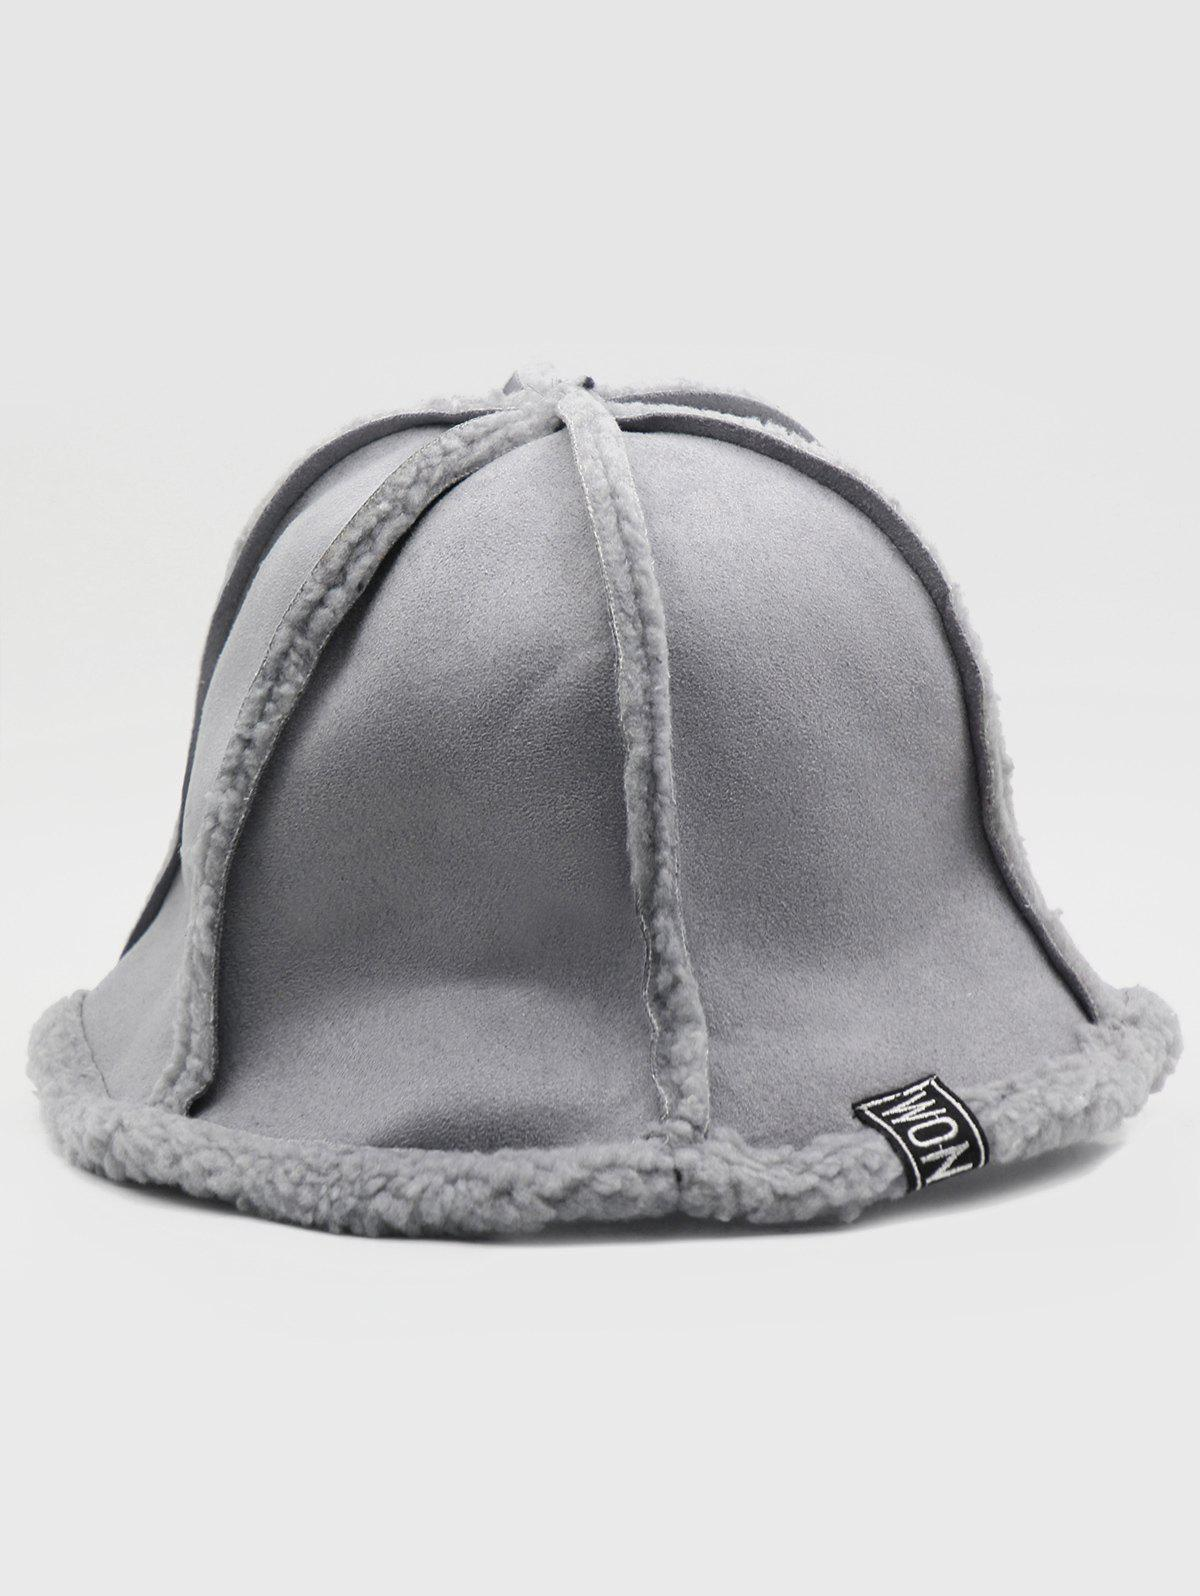 Hot Winter Fuzzy Foldable Bucket Hat